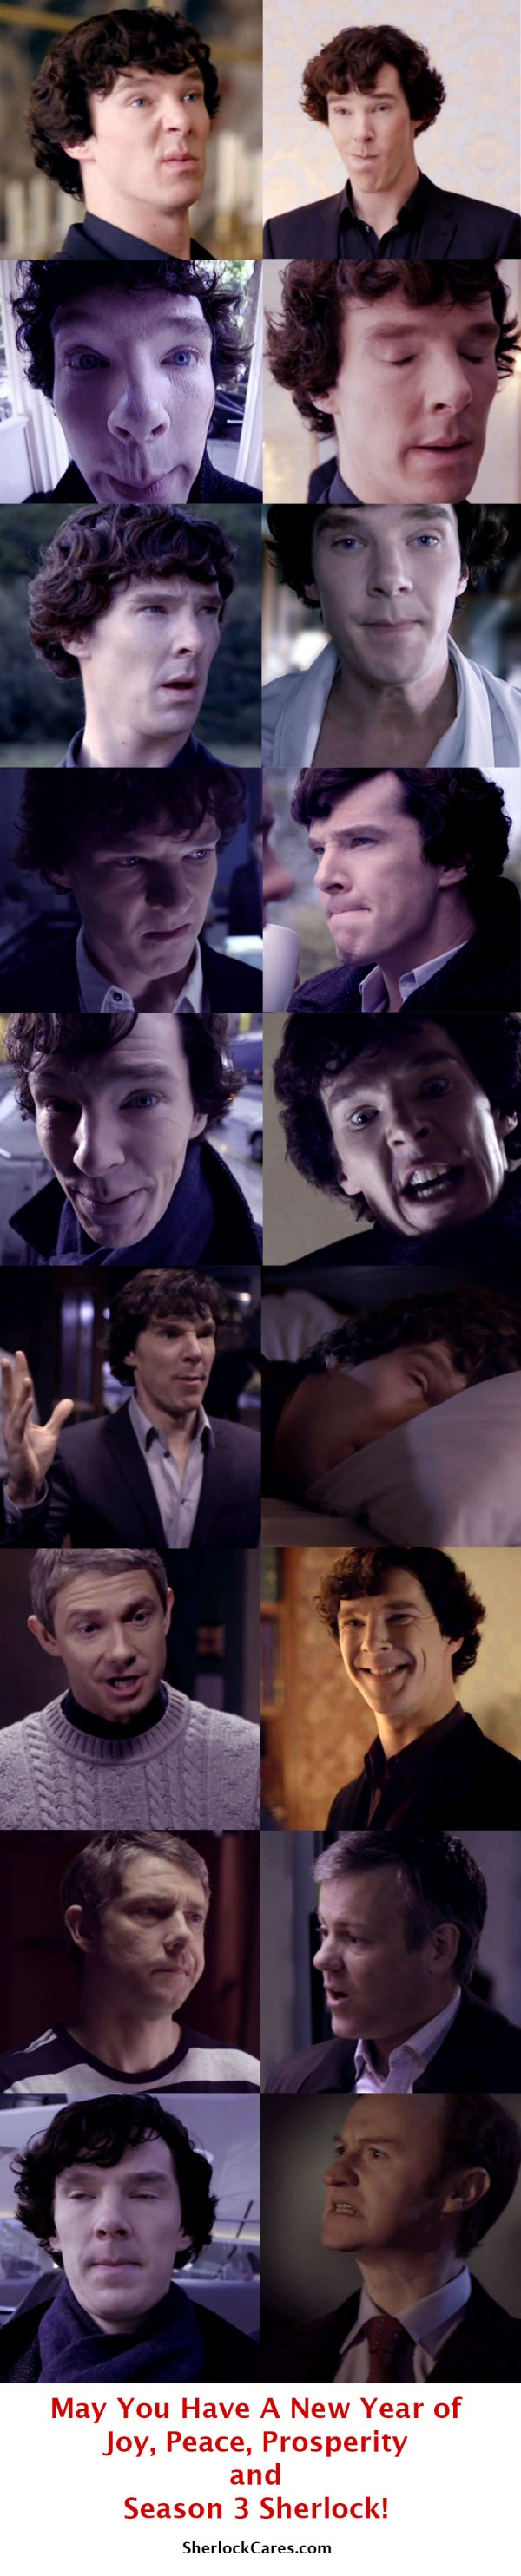 Several images of Benedict cumberbatch as Sherlock Holmes with silly faces, test reads: May You Have a New Year of Joy, Peace, Prosperity and Season 3 Sherlock